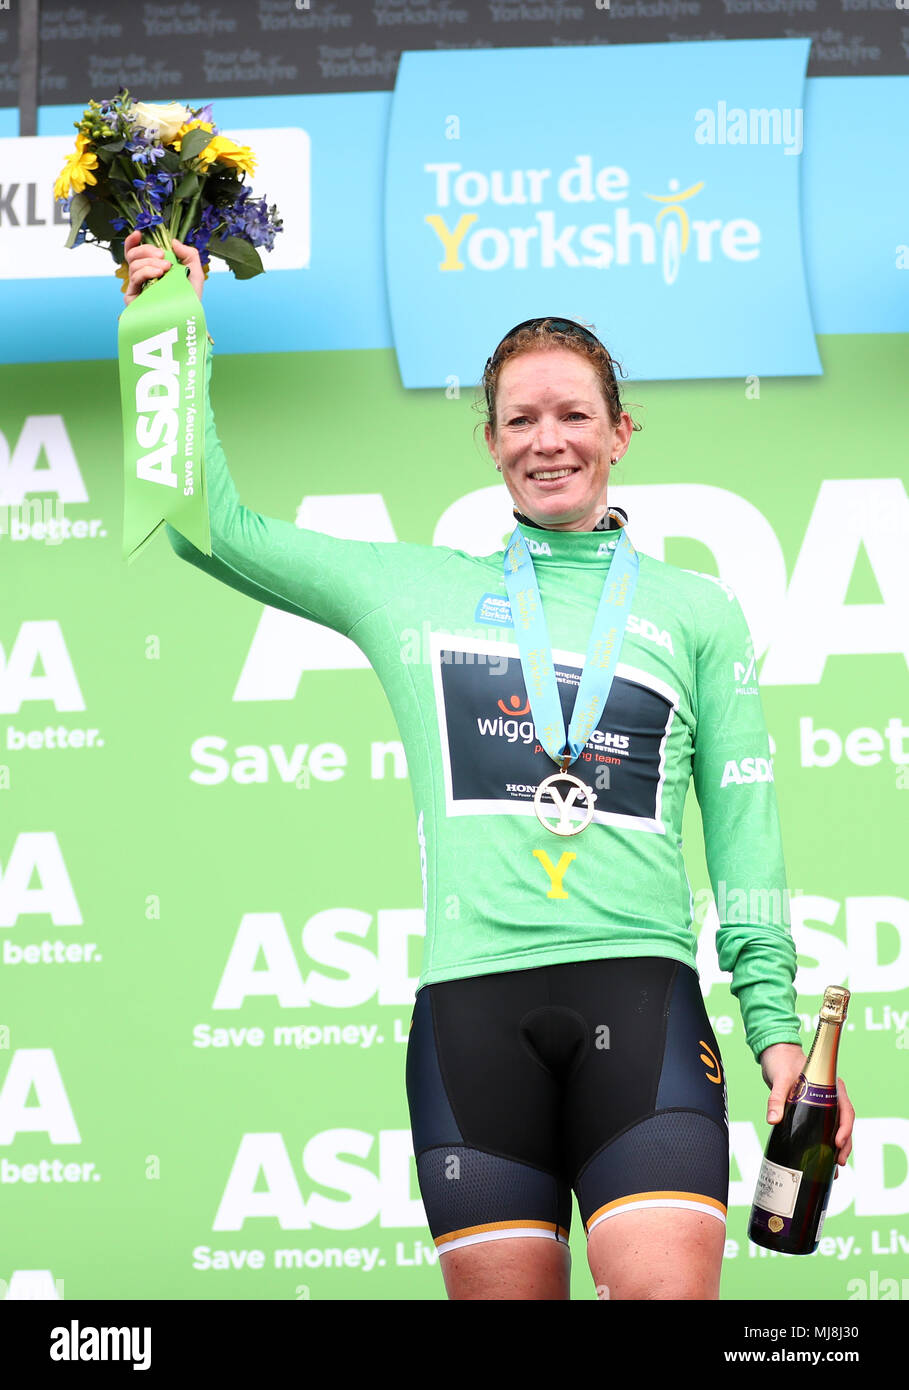 Wiggle High5 Pro Cycling's Kirsten Wild with the points jersey on the podium during day two of the ASDA Women's Tour de Yorkshire from Barnsley to Ilkley. Stock Photo